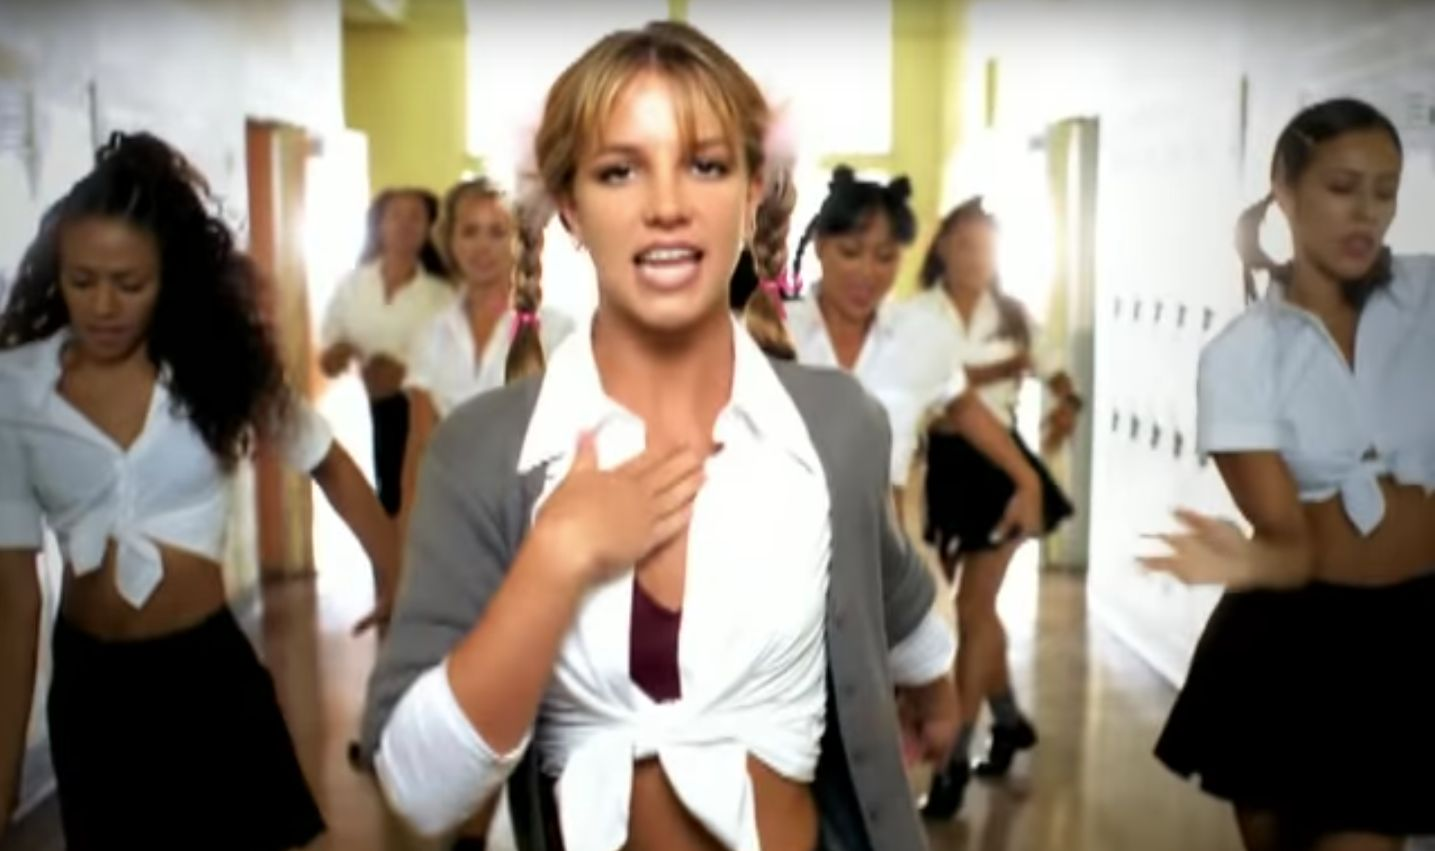 20 Years On, Here's 20 Facts About Britney Spears's '...Baby One More Time' You Definitely Didn't